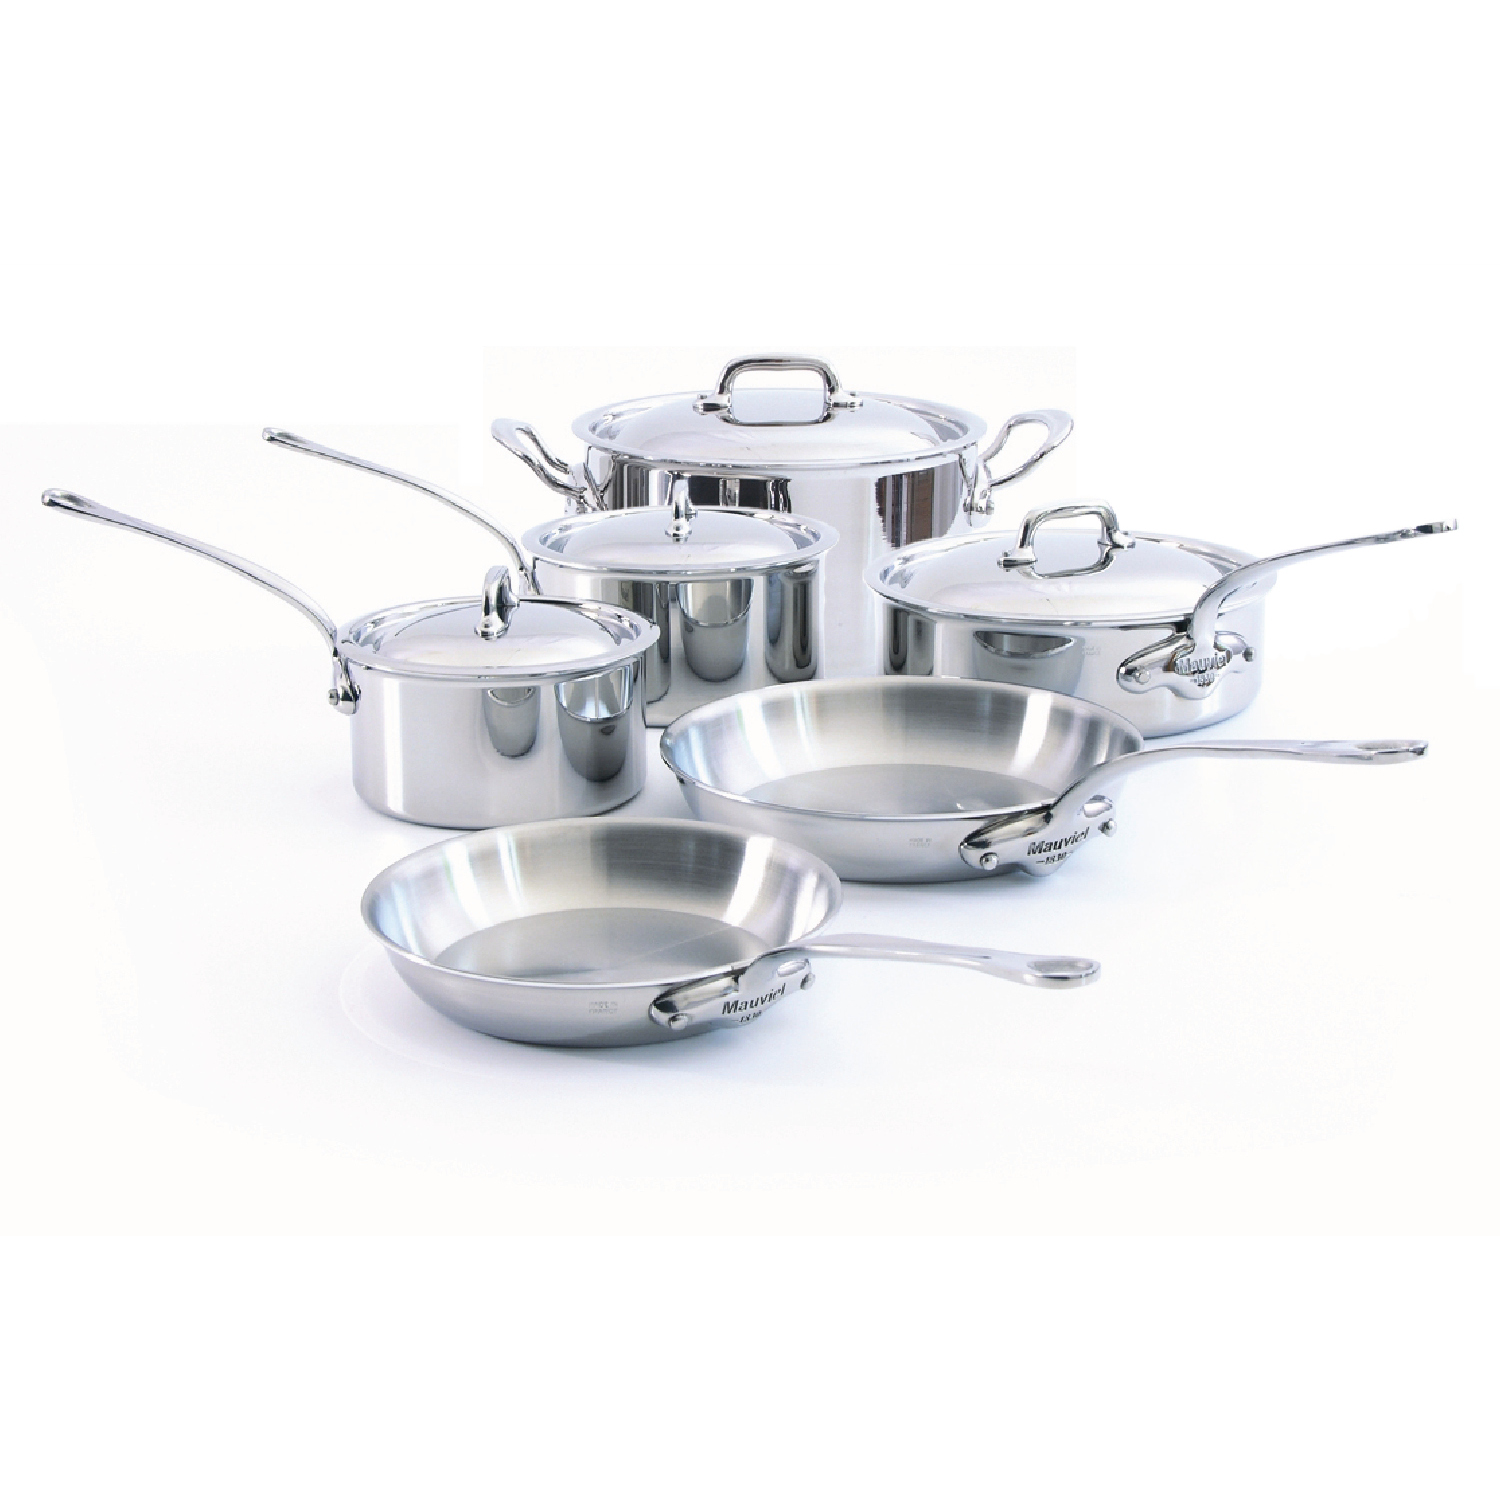 Mauviel M'Cook 10 Piece Stainless Steel Cookware Set